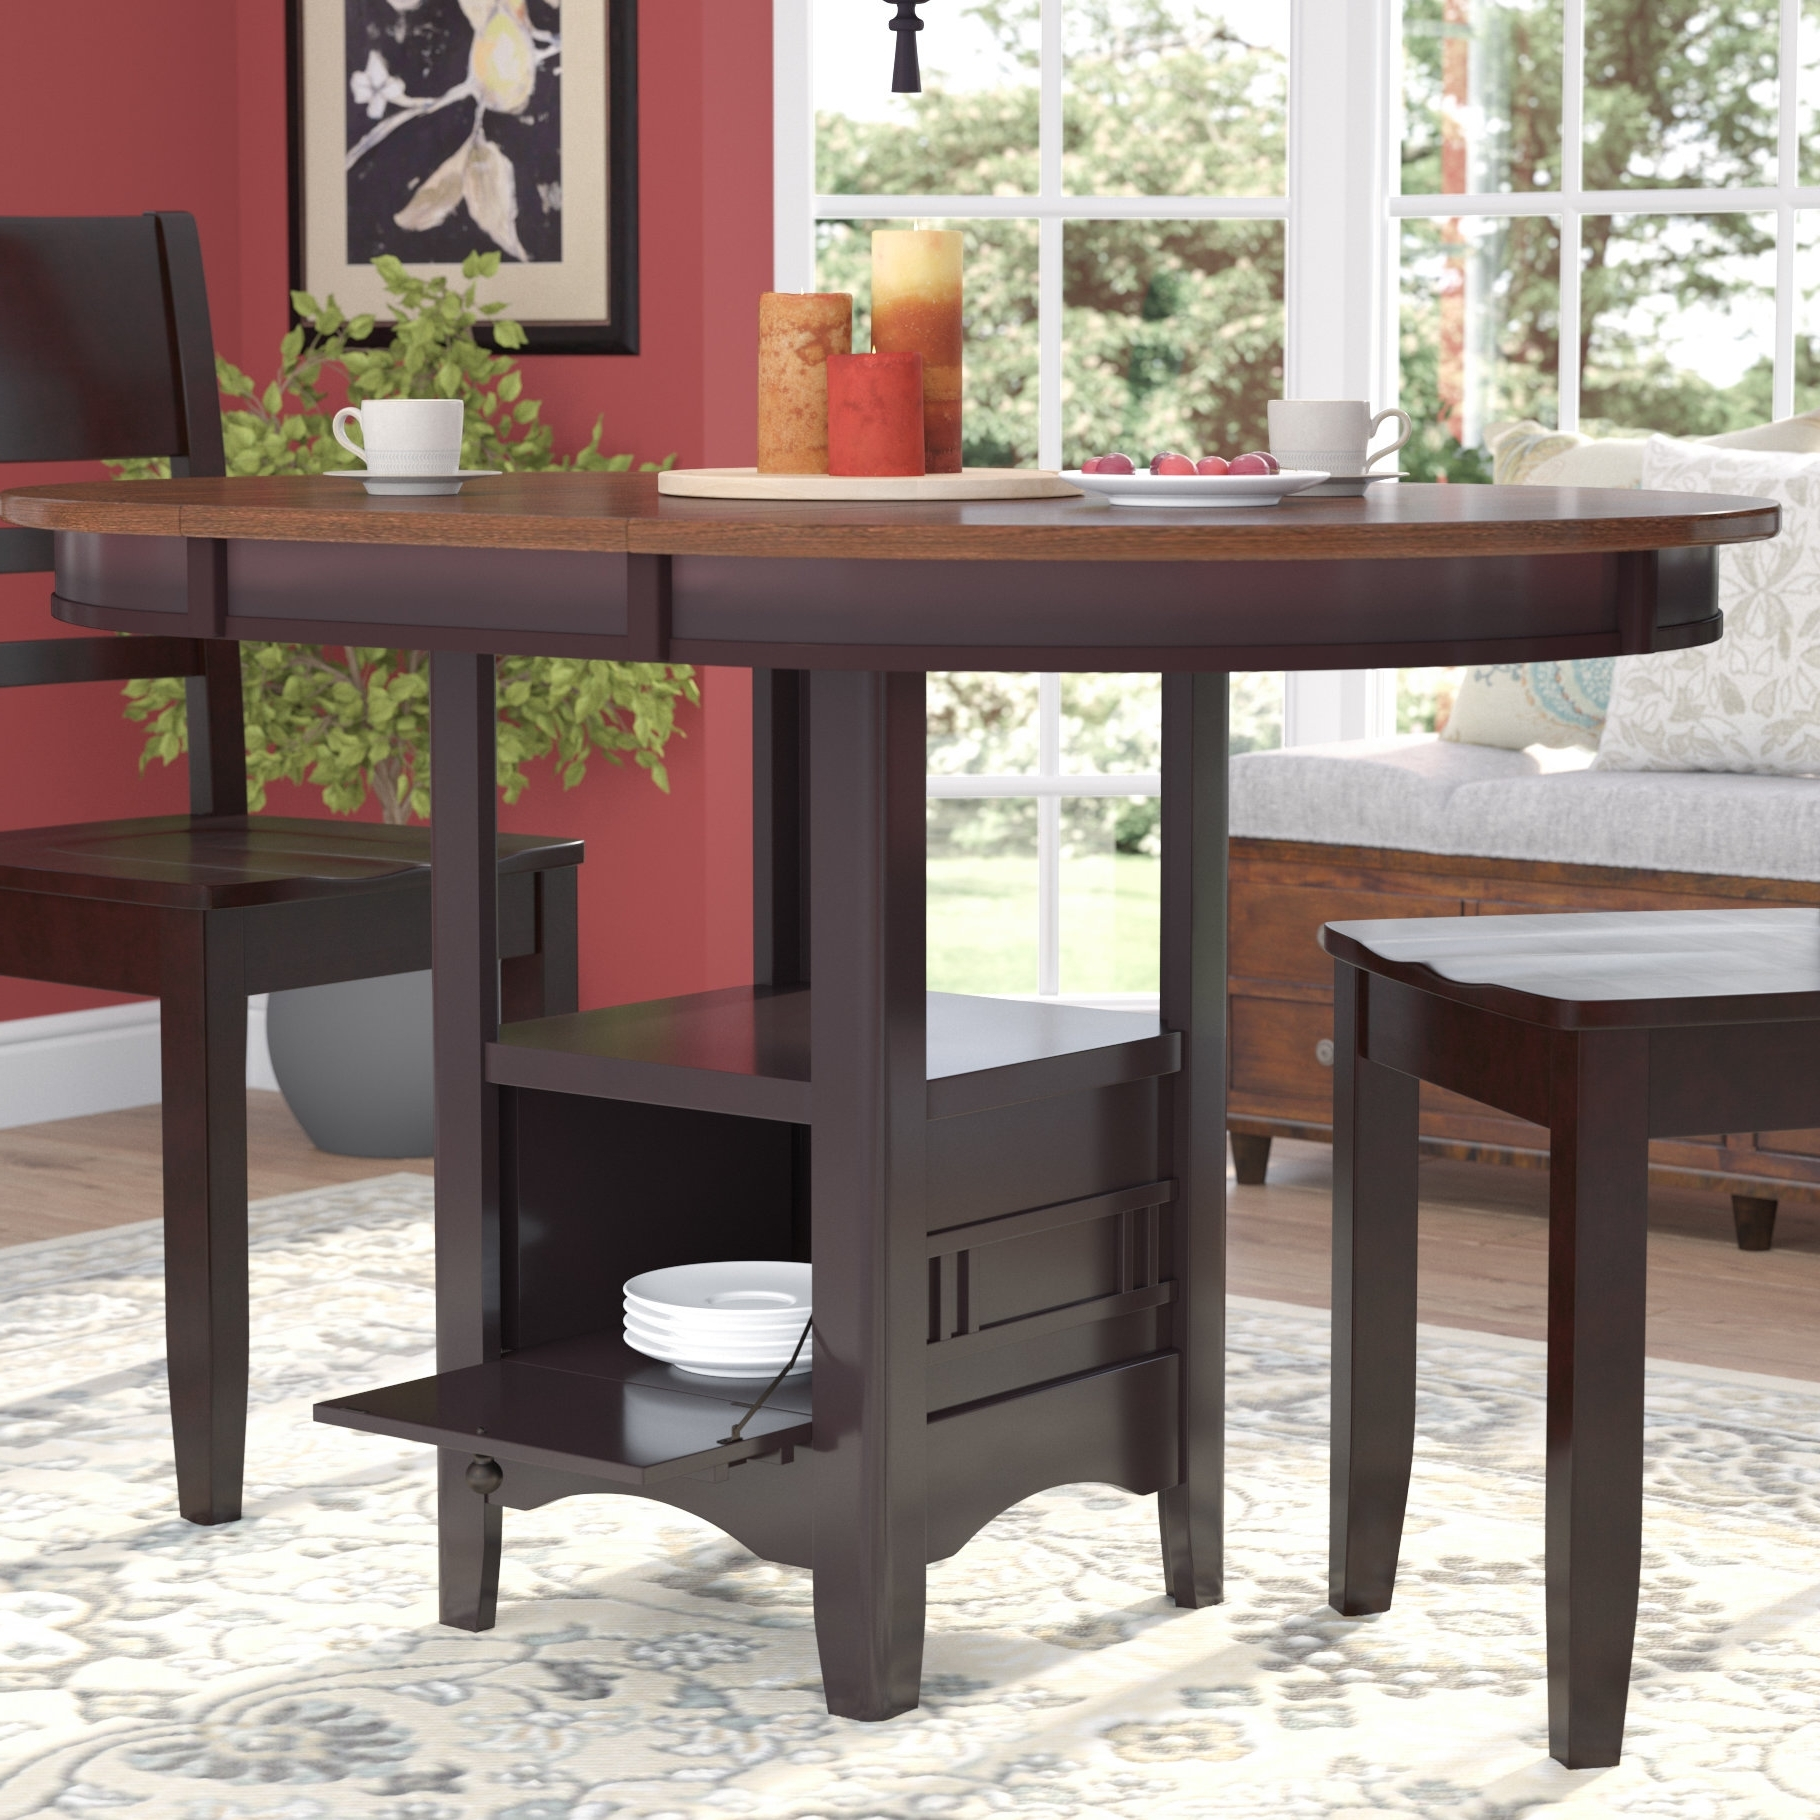 Current Darby Home Co Sinkler Counter Height Drop Leaf Dining Table Intended For Cheap Drop Leaf Dining Tables (View 12 of 25)